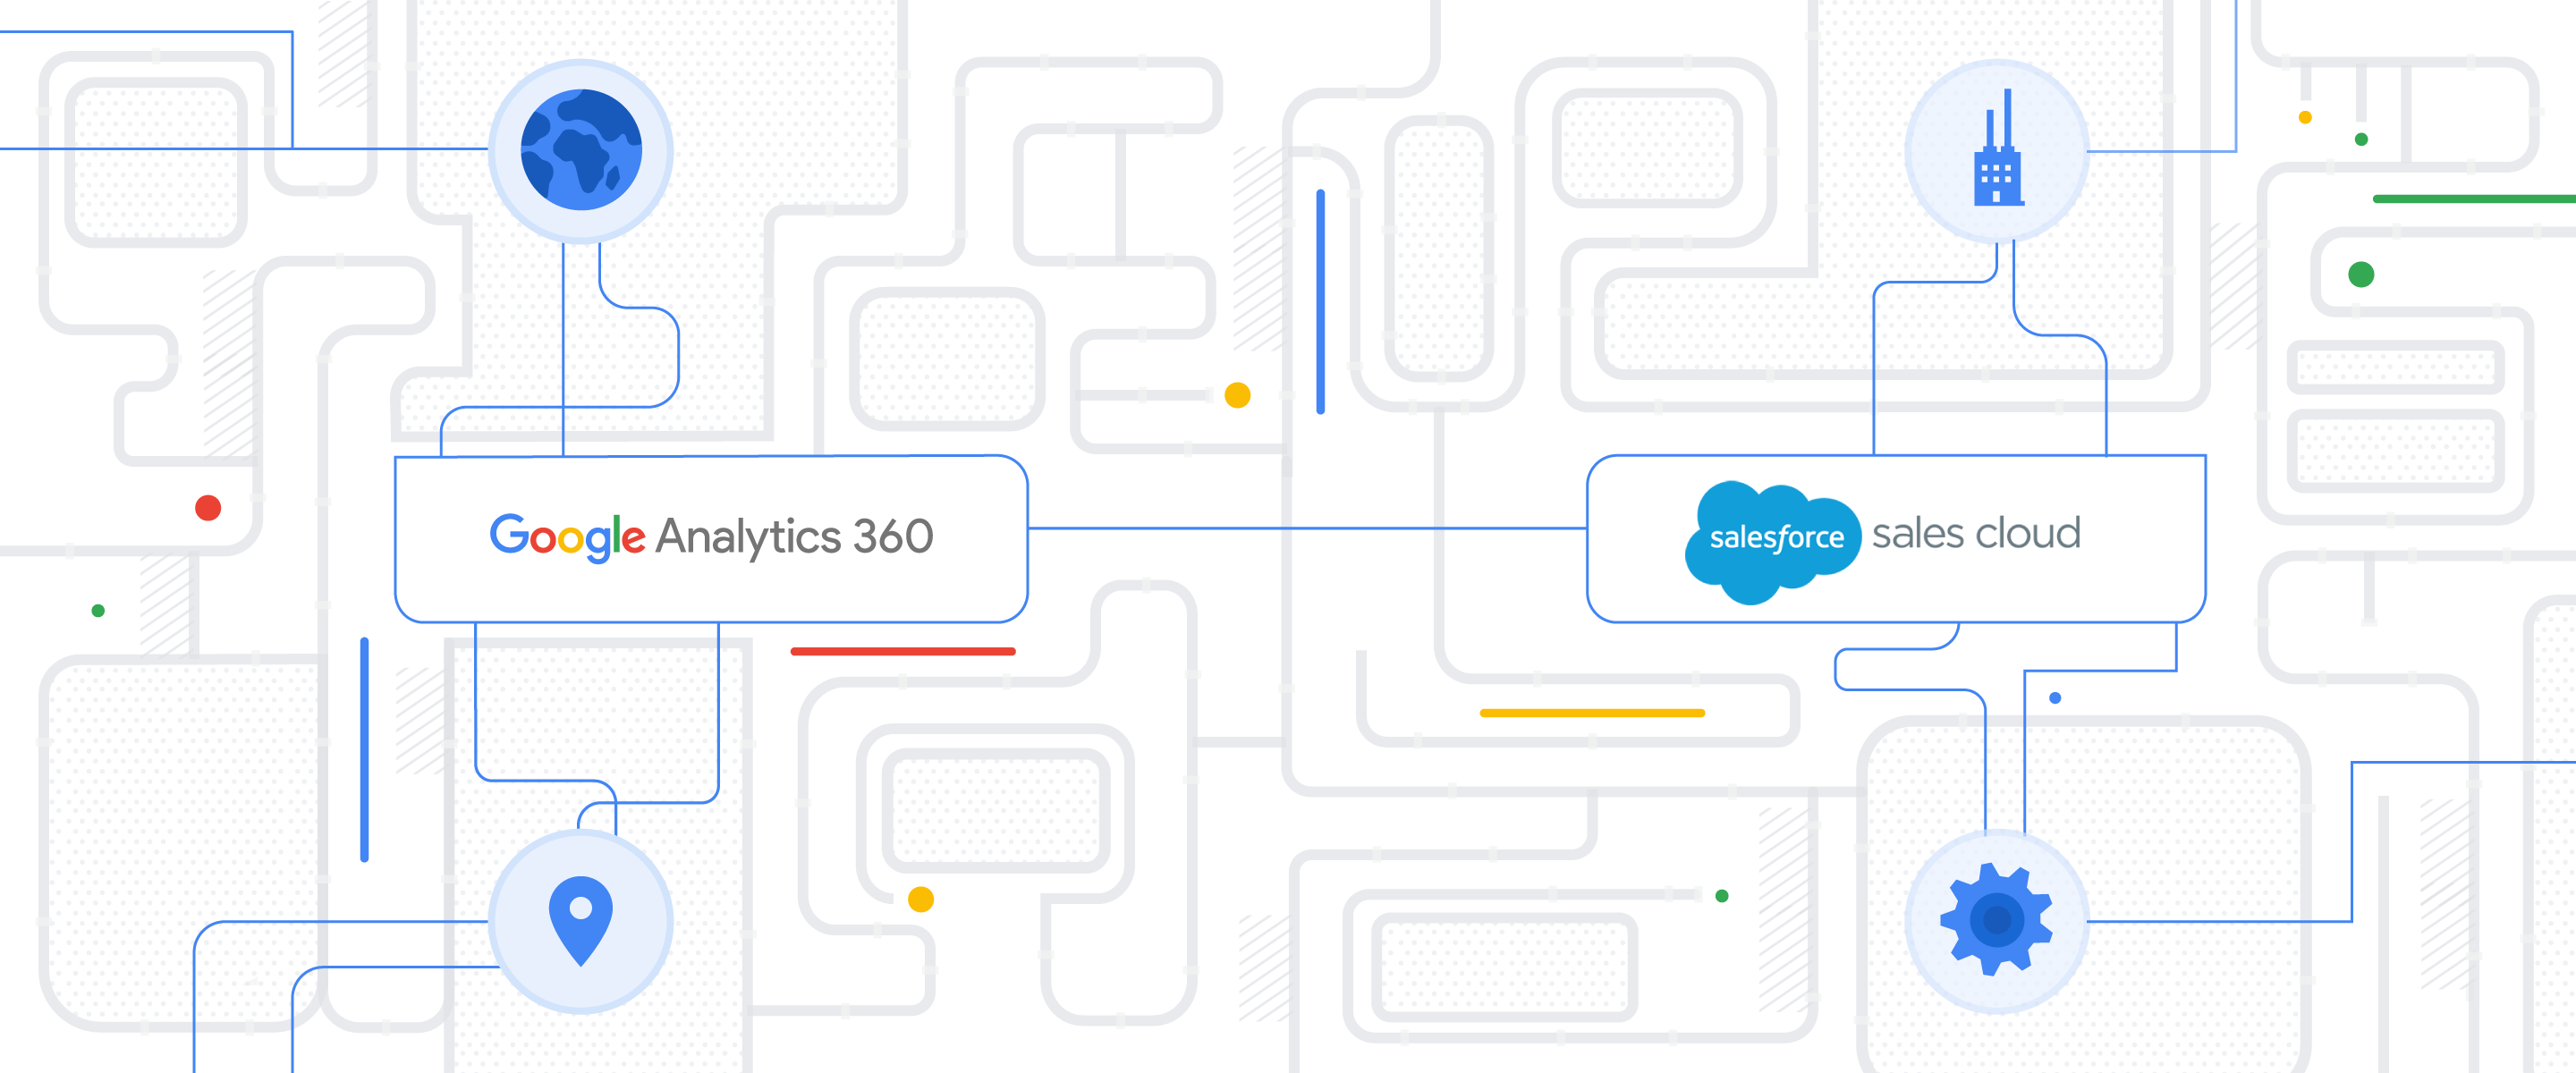 A deeper connection between Google Analytics 360 and Salesforce Sales Cloud